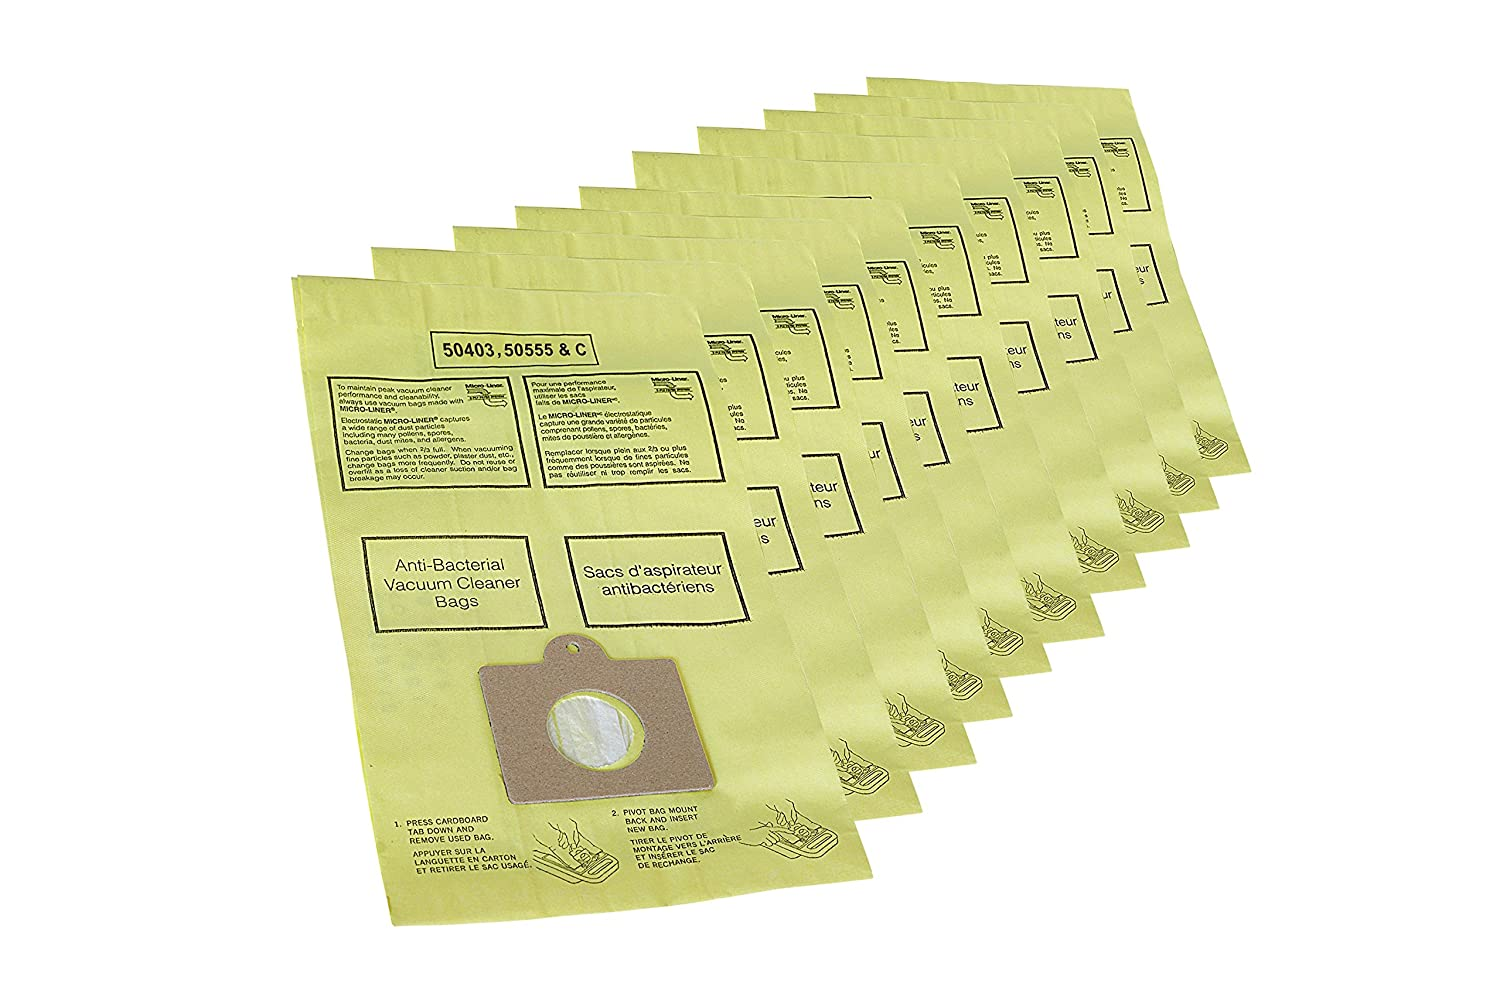 Kenmore 20-50403 Micro-Lined Disposable Canister Vacuum Cleaner Bags - Package of 10 456772